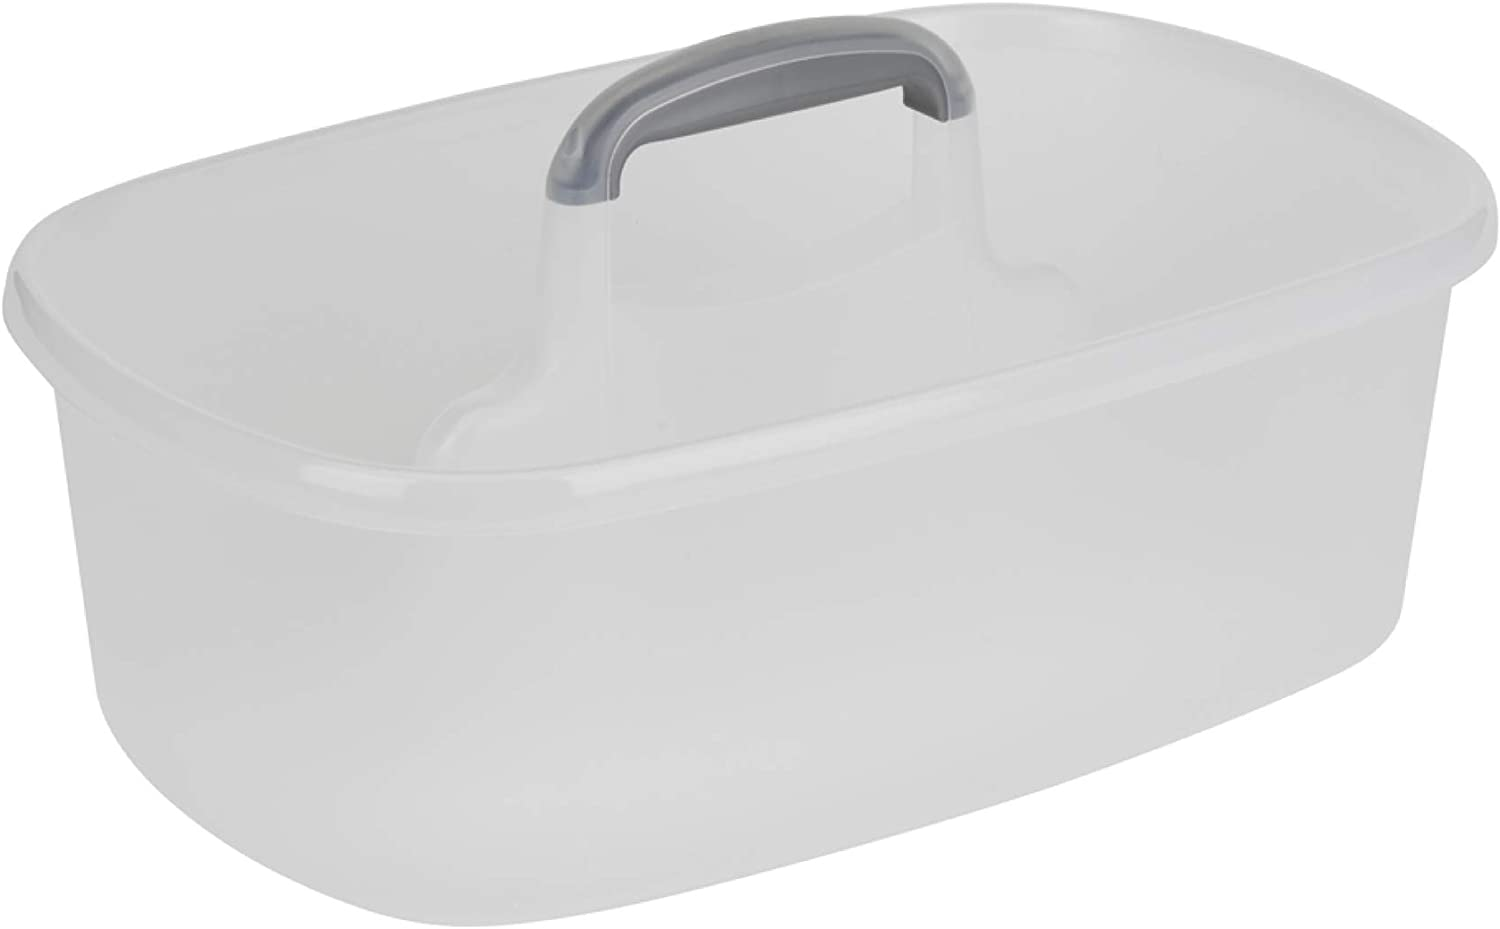 Casabella Cleaning Handle Bucket, Clear/Silver Rectangular Storage Caddy, Graphite, 4 gallons, Translucent: Home & Kitchen